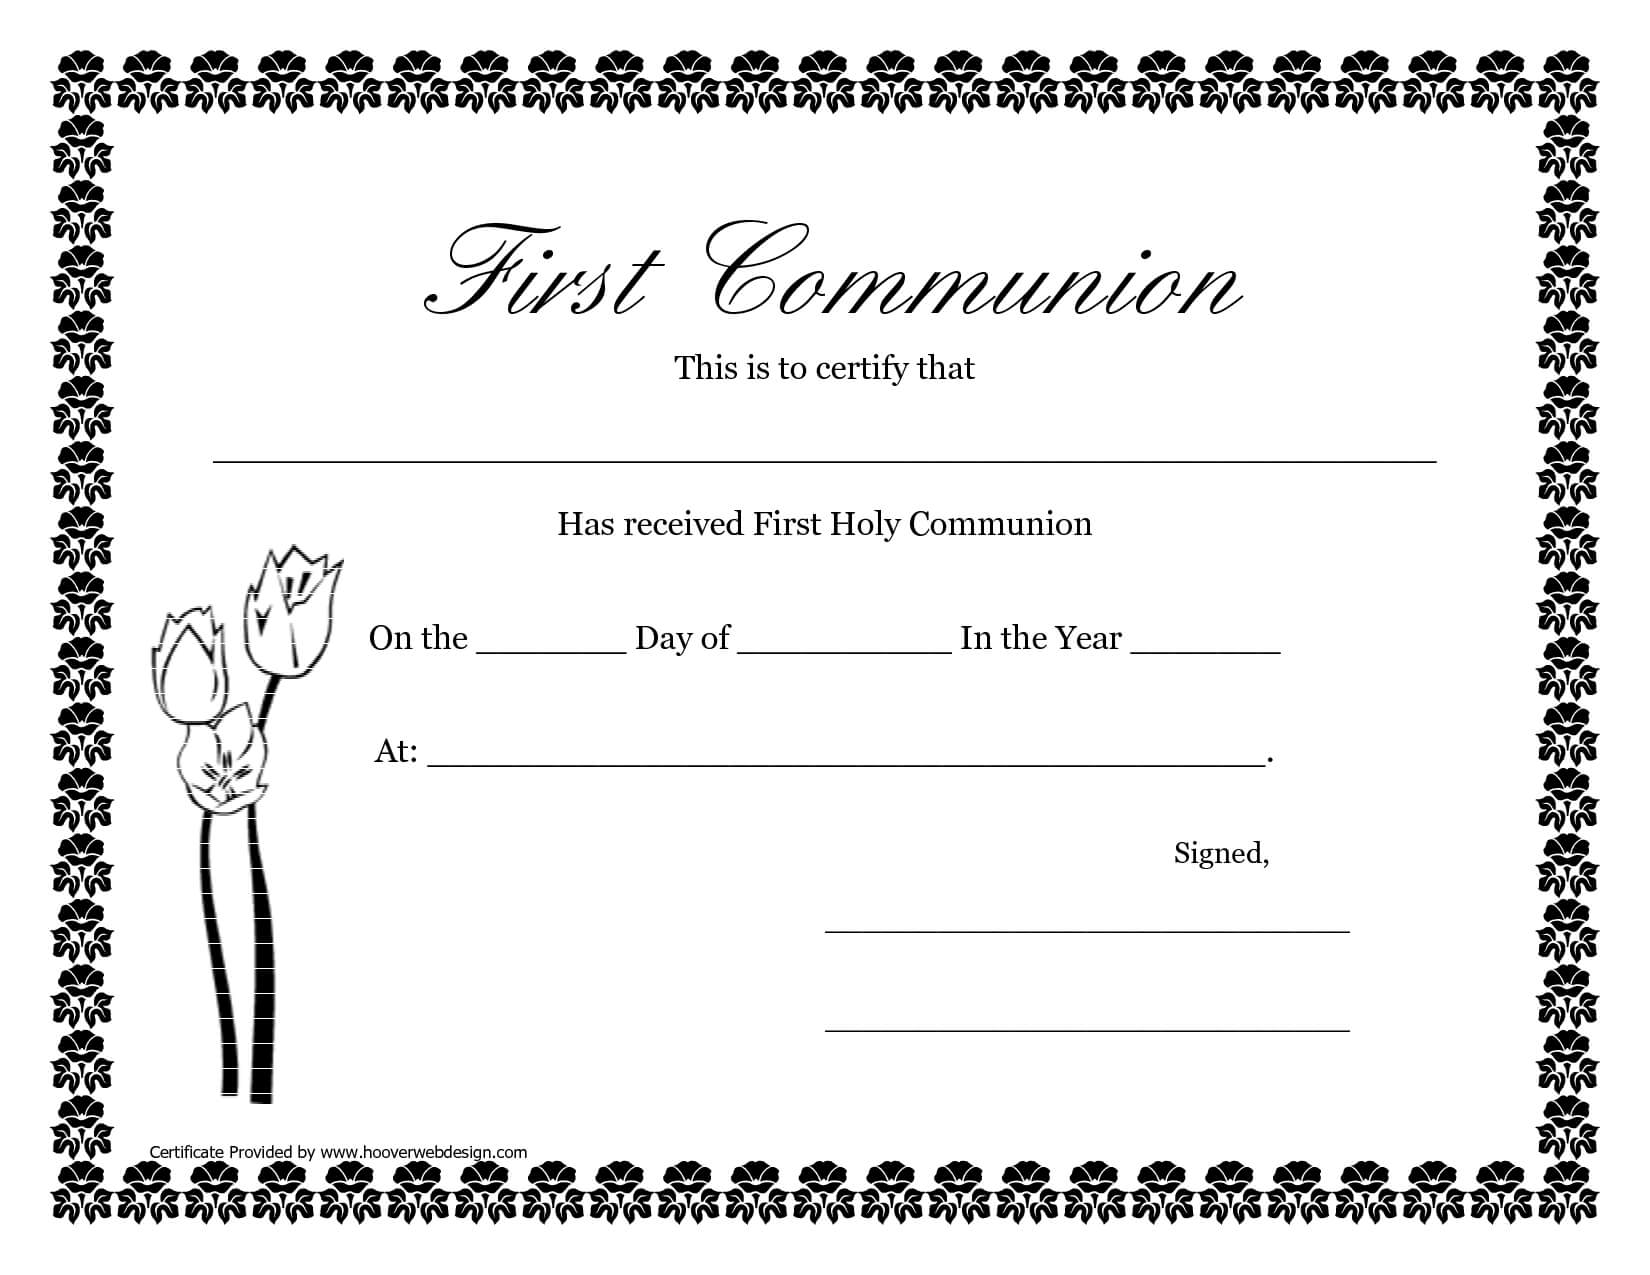 First Communion Banner Templates | Printable First Communion With Regard To Free Printable First Communion Banner Templates